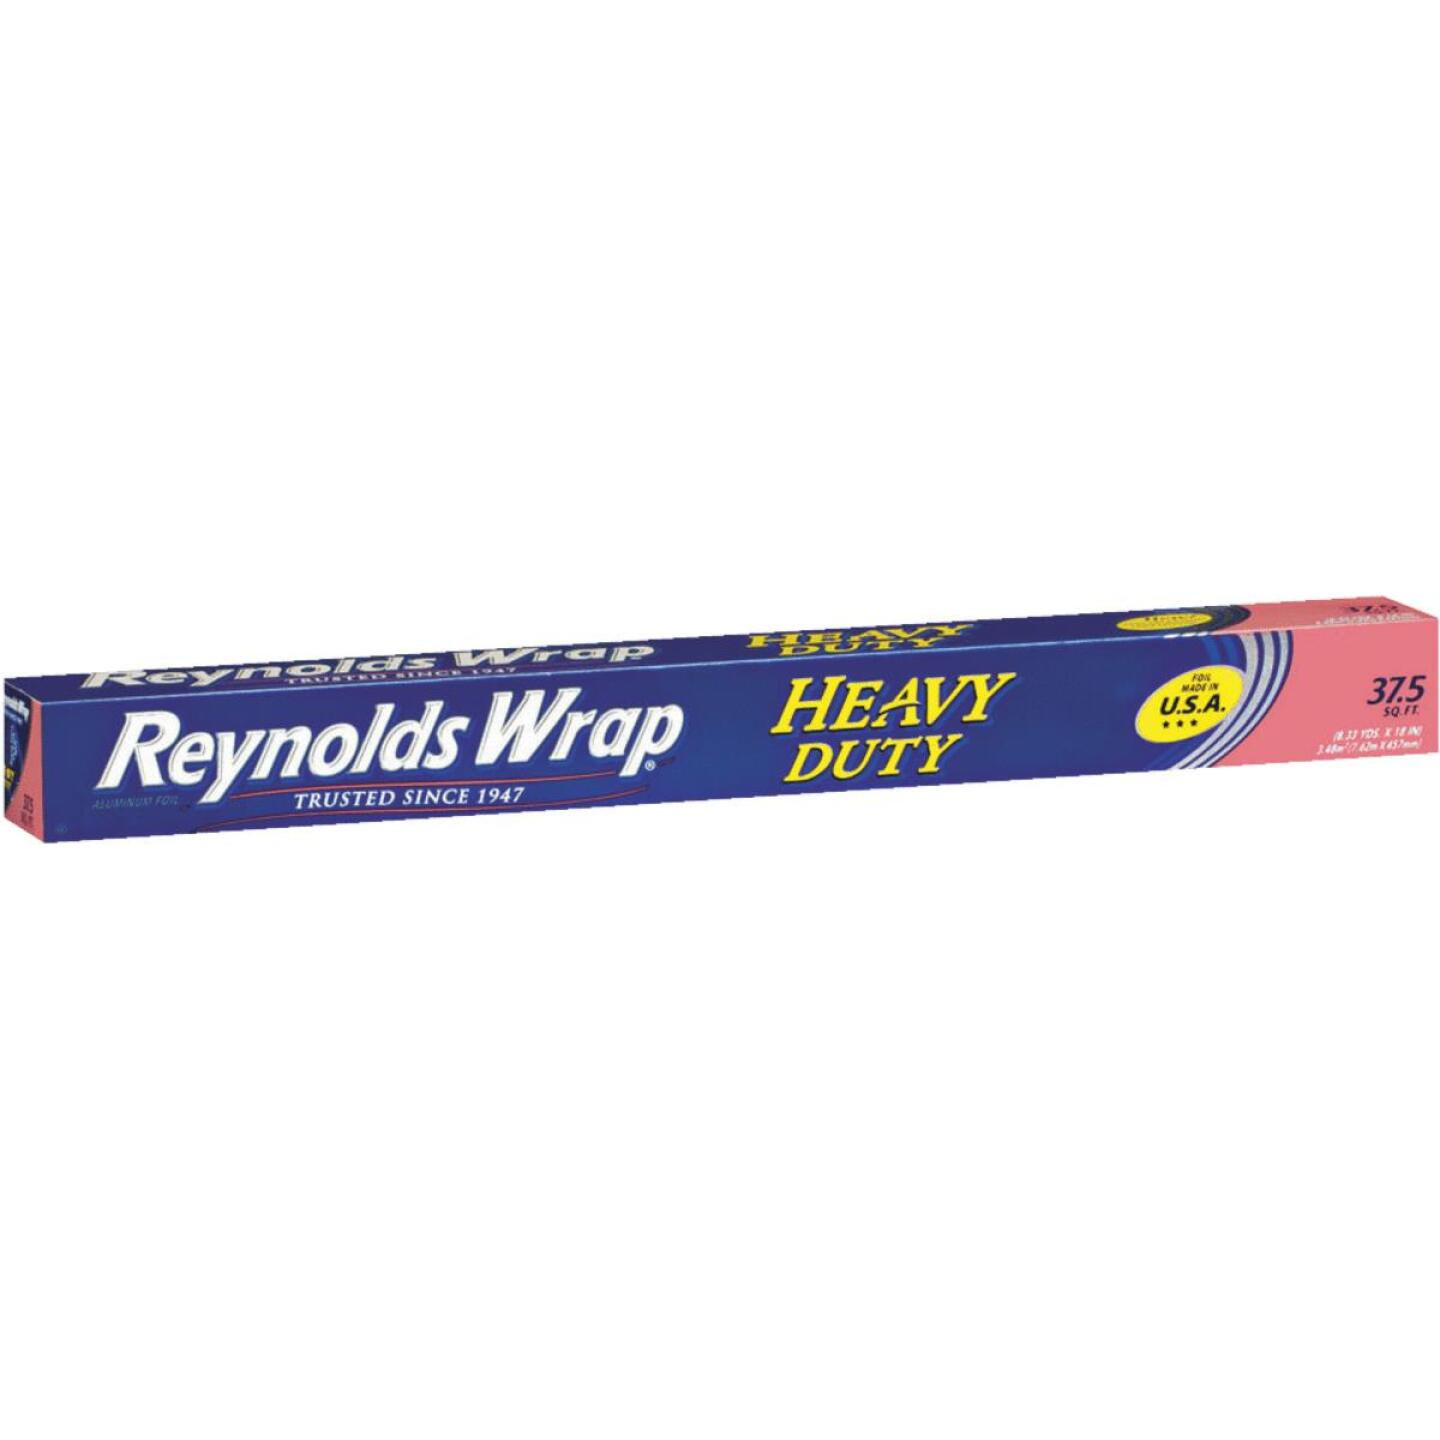 Reynolds Wrap 37-1/2 Sq. Ft. Heavy-Duty Aluminum Foil Image 1